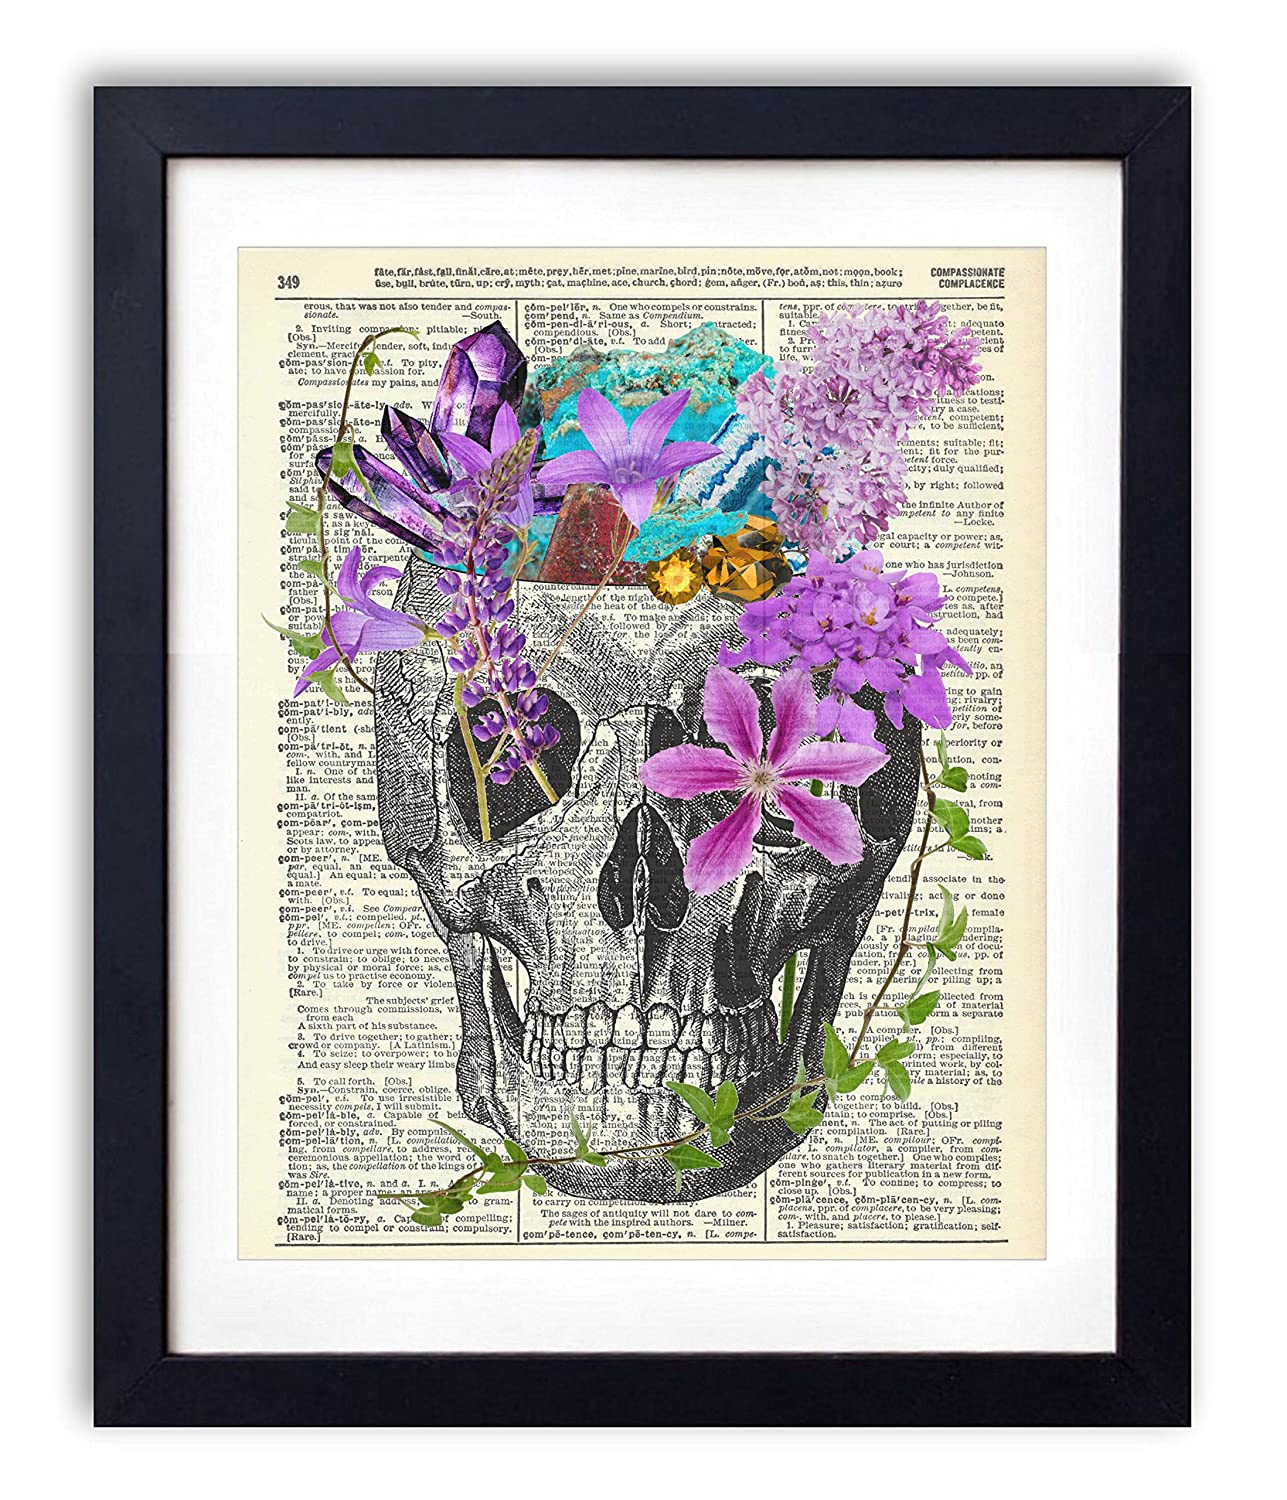 Skull With Flowers and Crystals Upcycled Wall Art Vintage Dictionary Art Print 8x10 inches / 20.32 x 25.4 cm Unframed